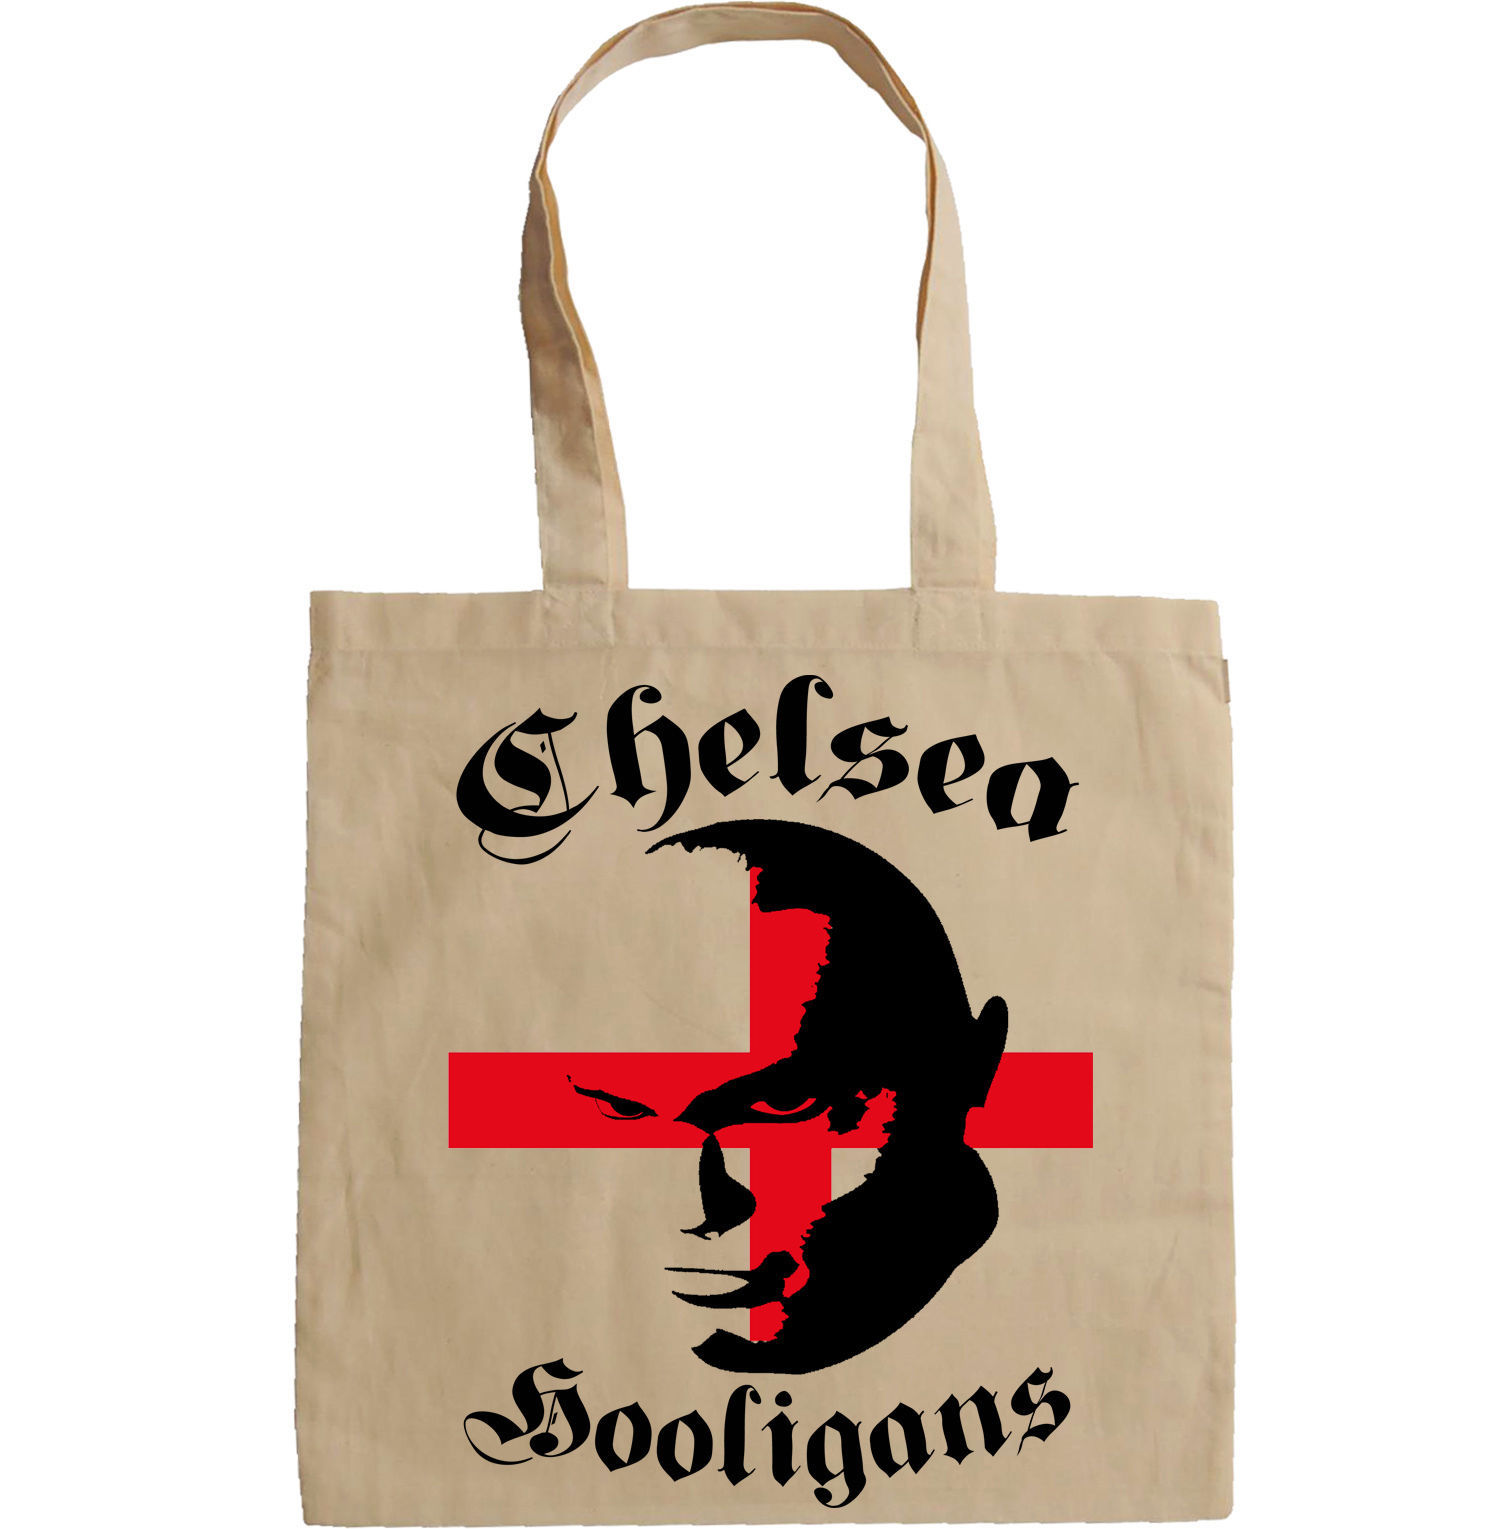 CHELSEA HOOLIGANS - NEW AMAZING GRAPHIC HAND BAG/TOTE BAG